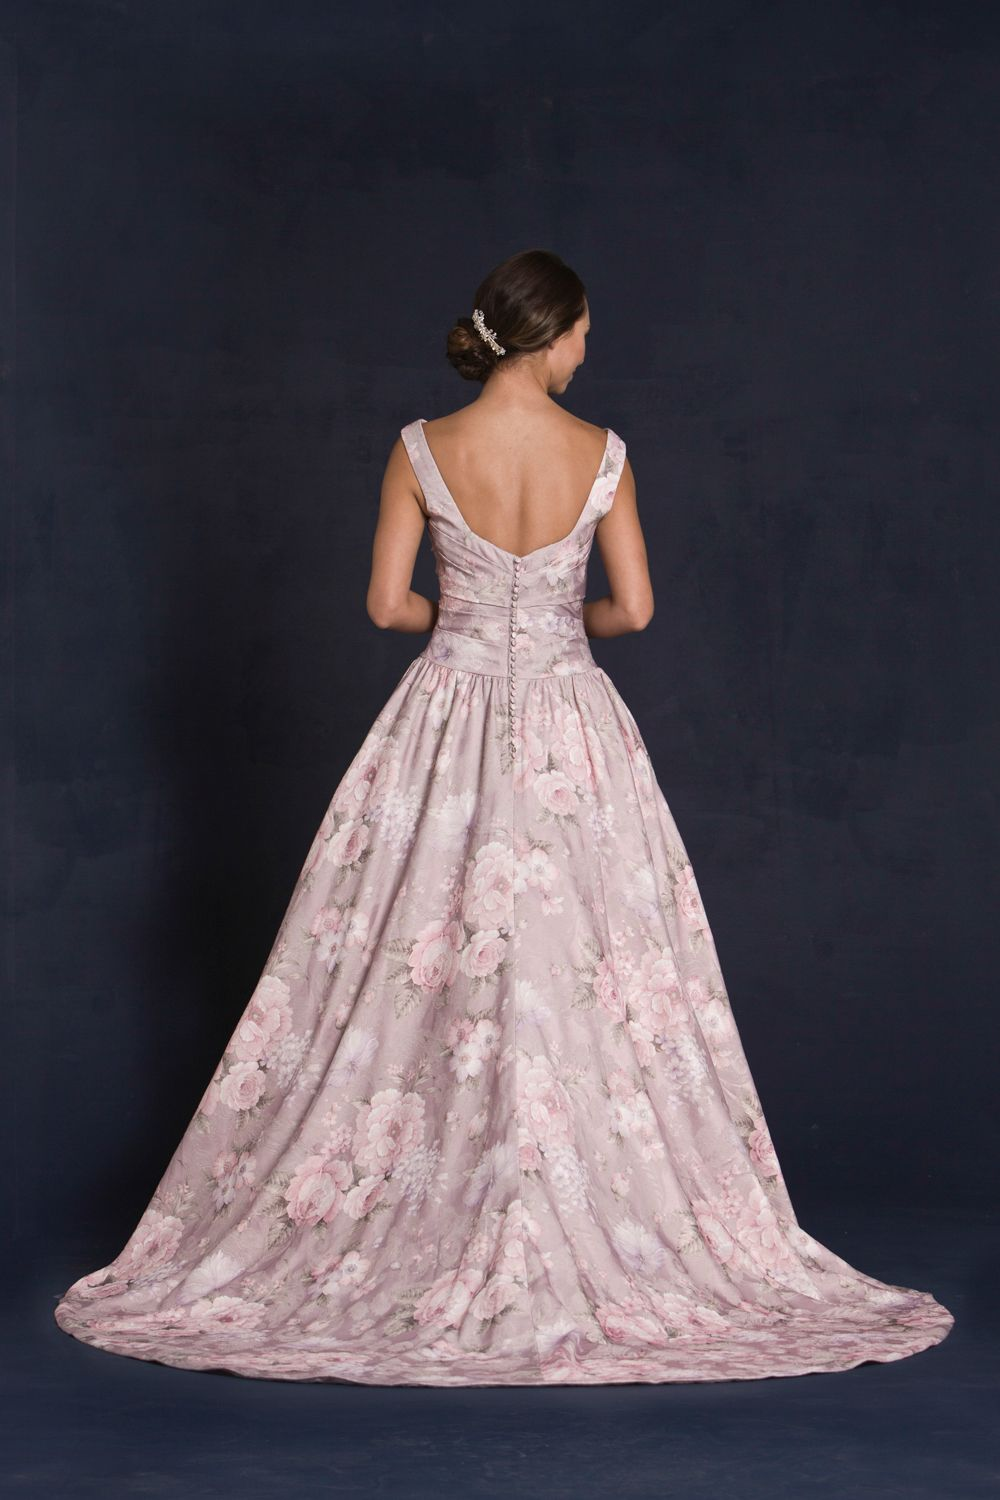 Style * GILMORE (S.E) * » Special Edition Wedding Dresses » 2015 Collection » by Lis Simon » Available Colours : Blush Floral Embroidered Jacquard (back)